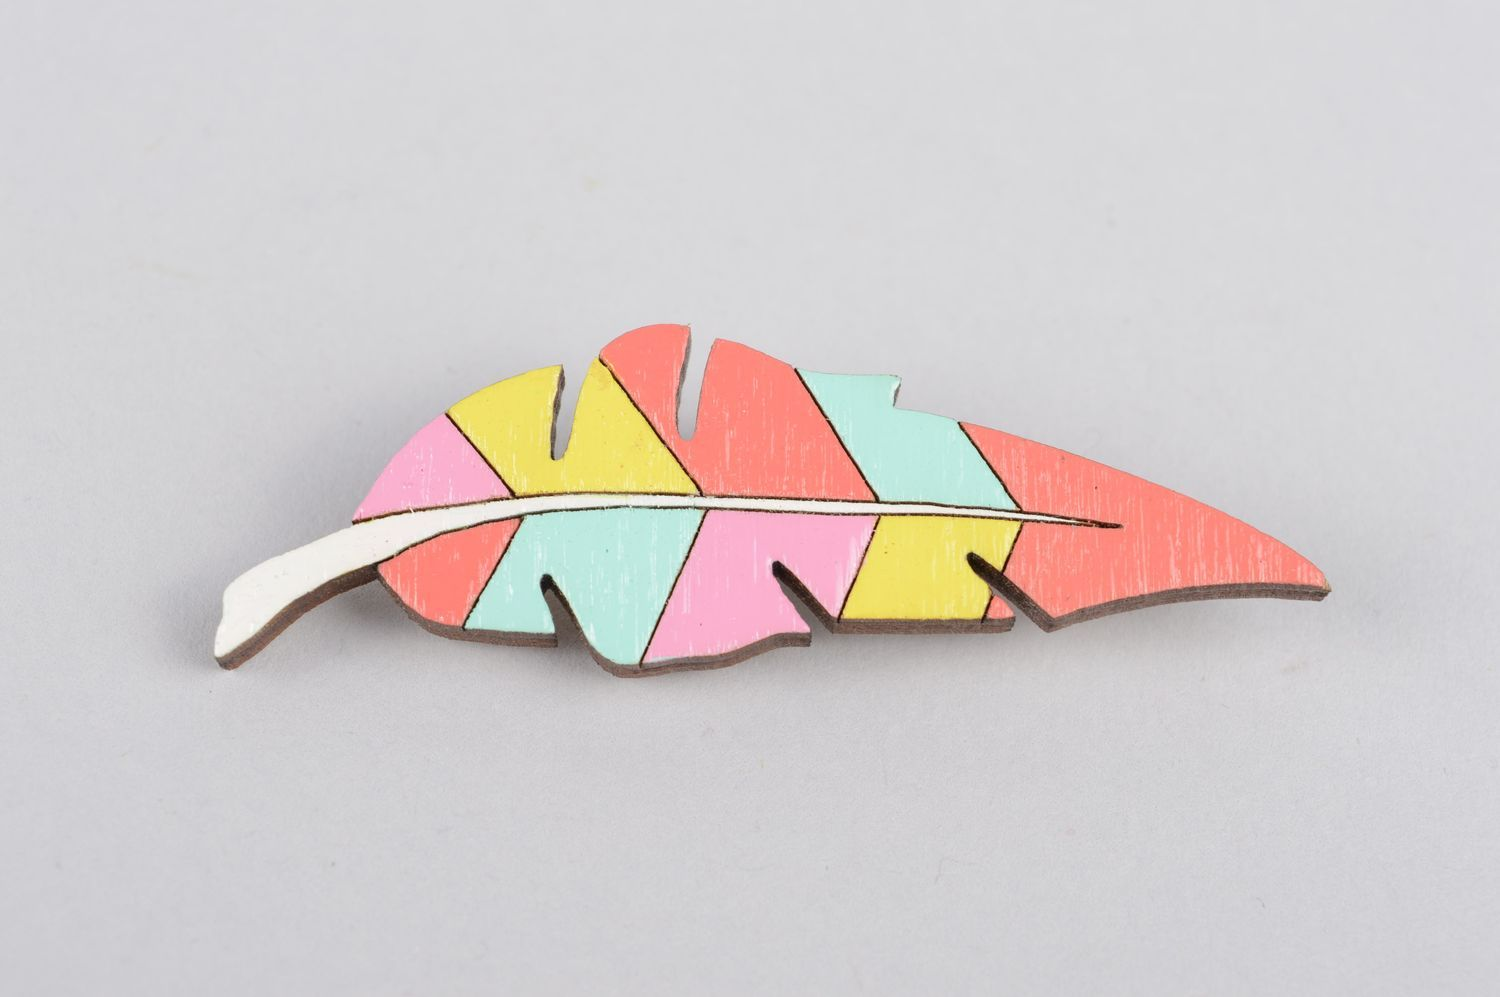 Handmade jewelry brooch jewelry brooch pin designer accessories gifts for women photo 2